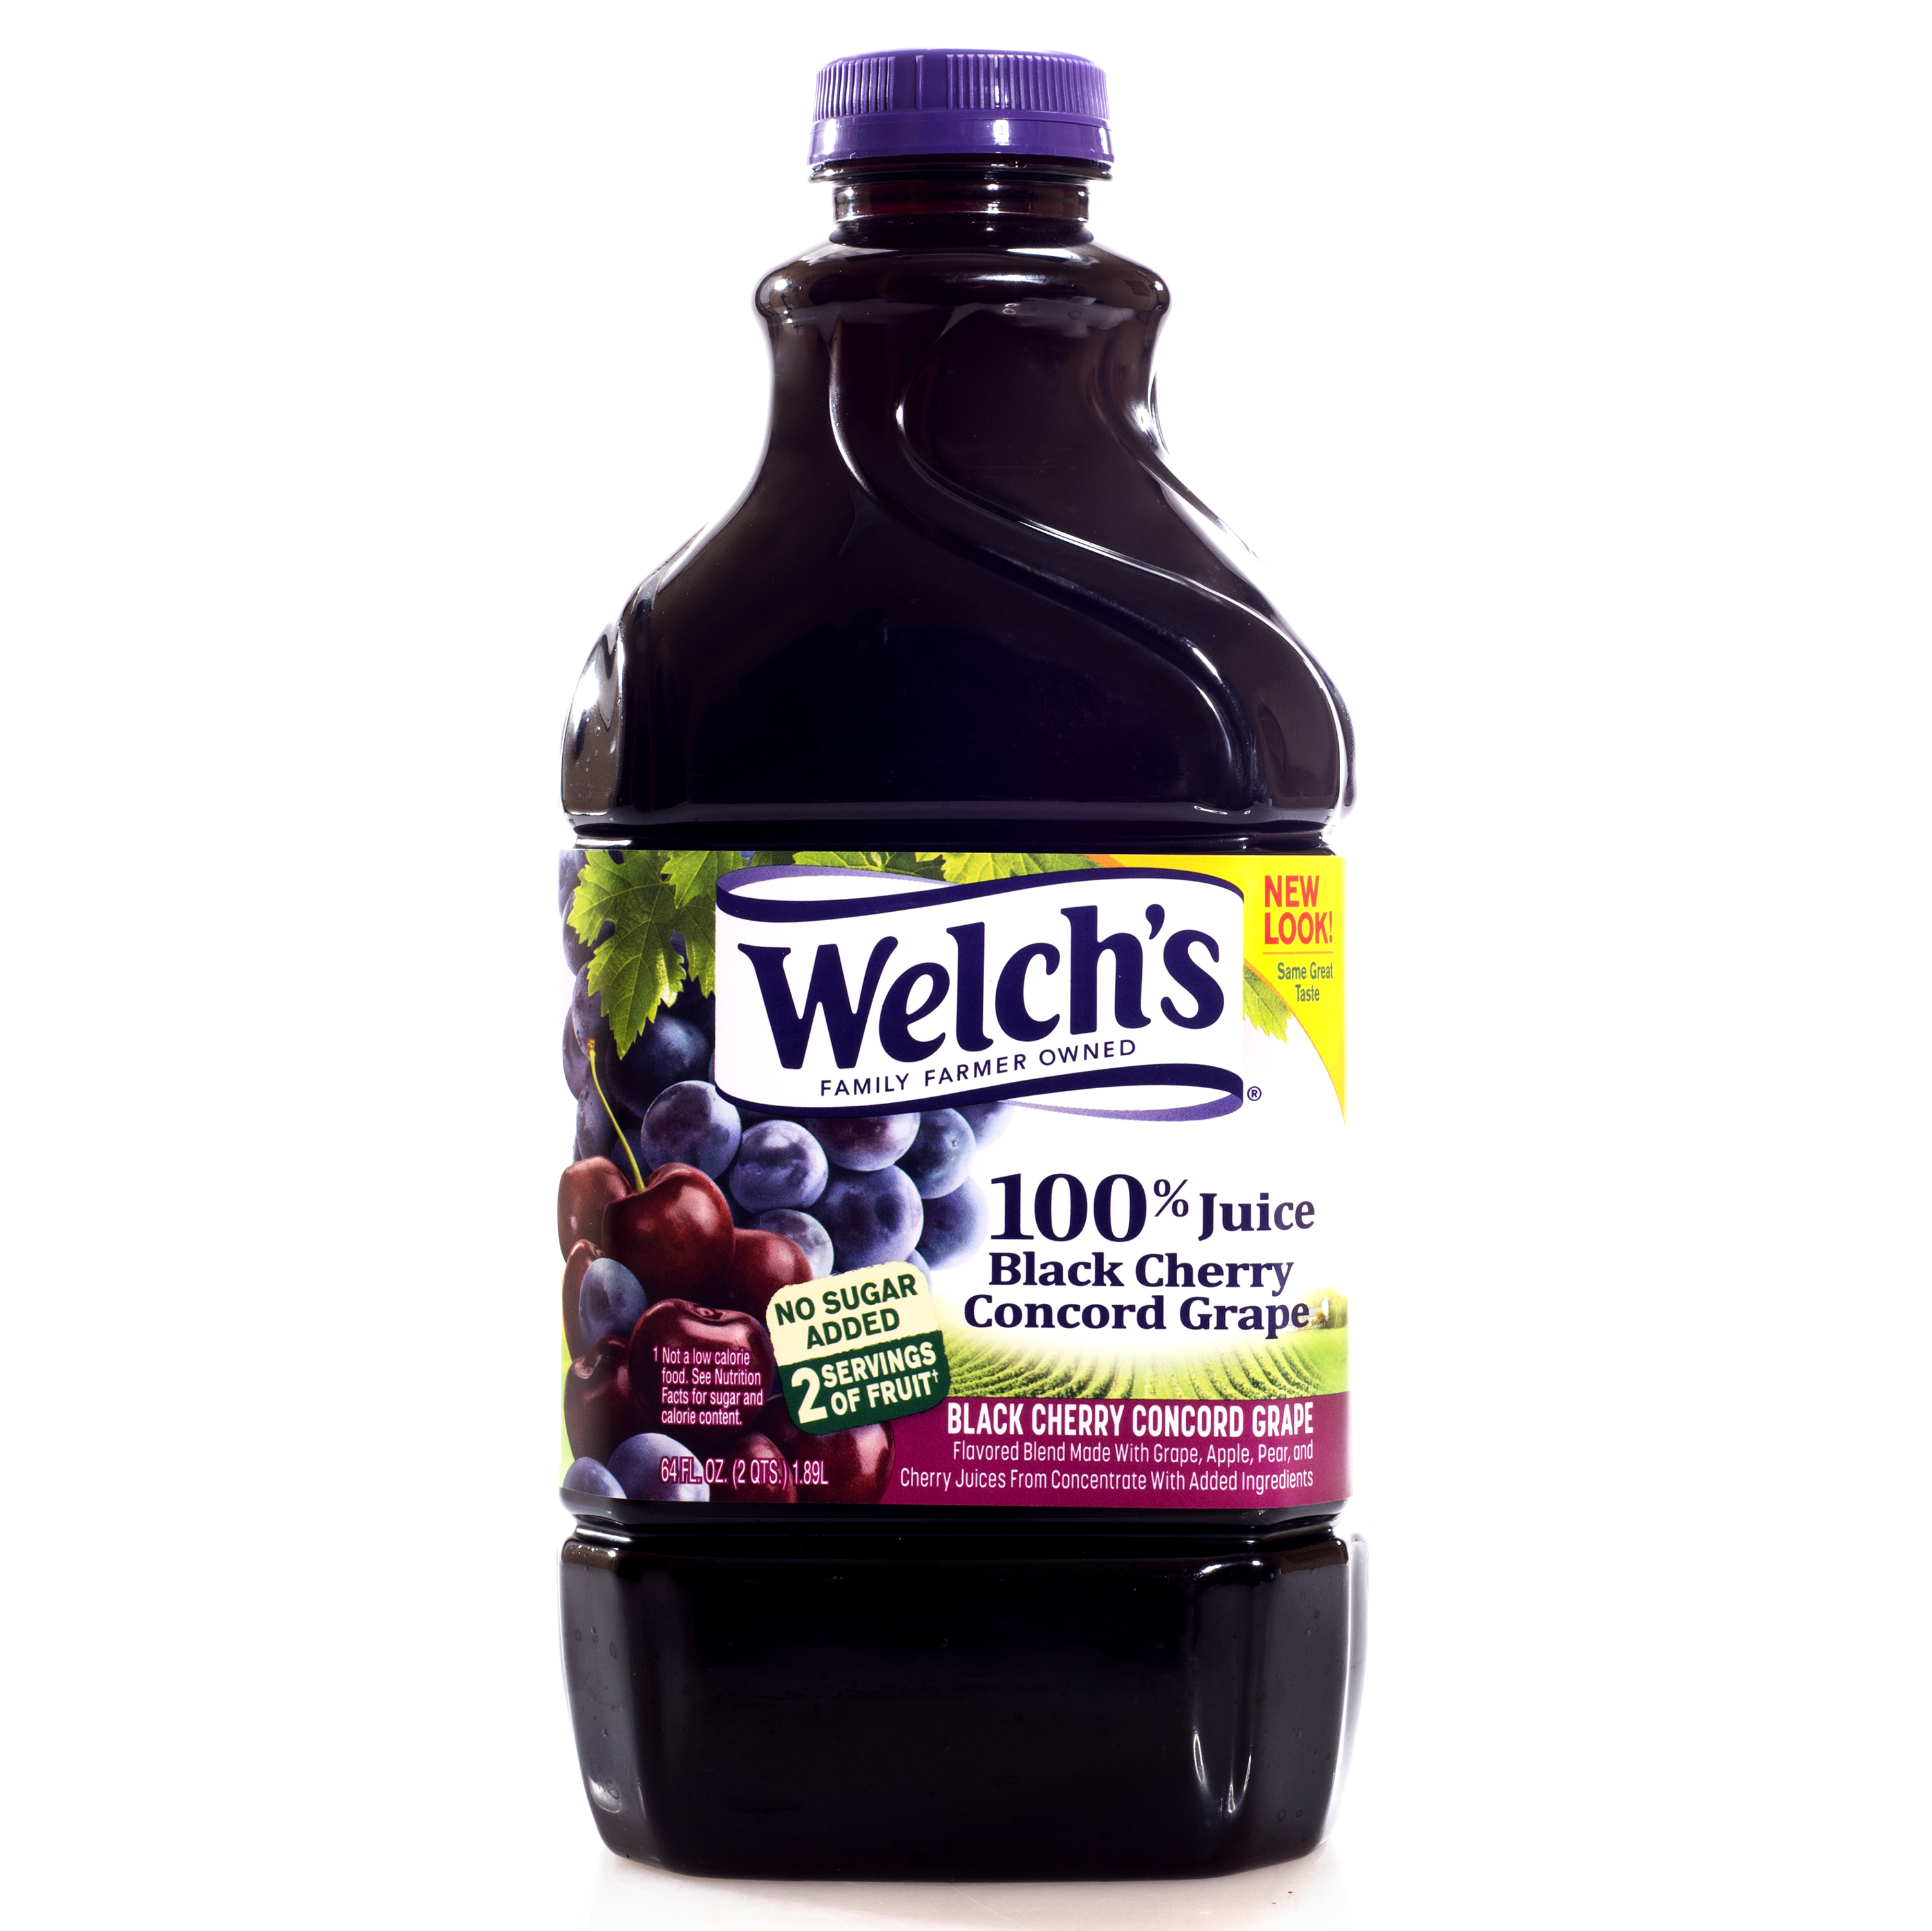 Welch's 100% Black Cherry Concord Grape Juice